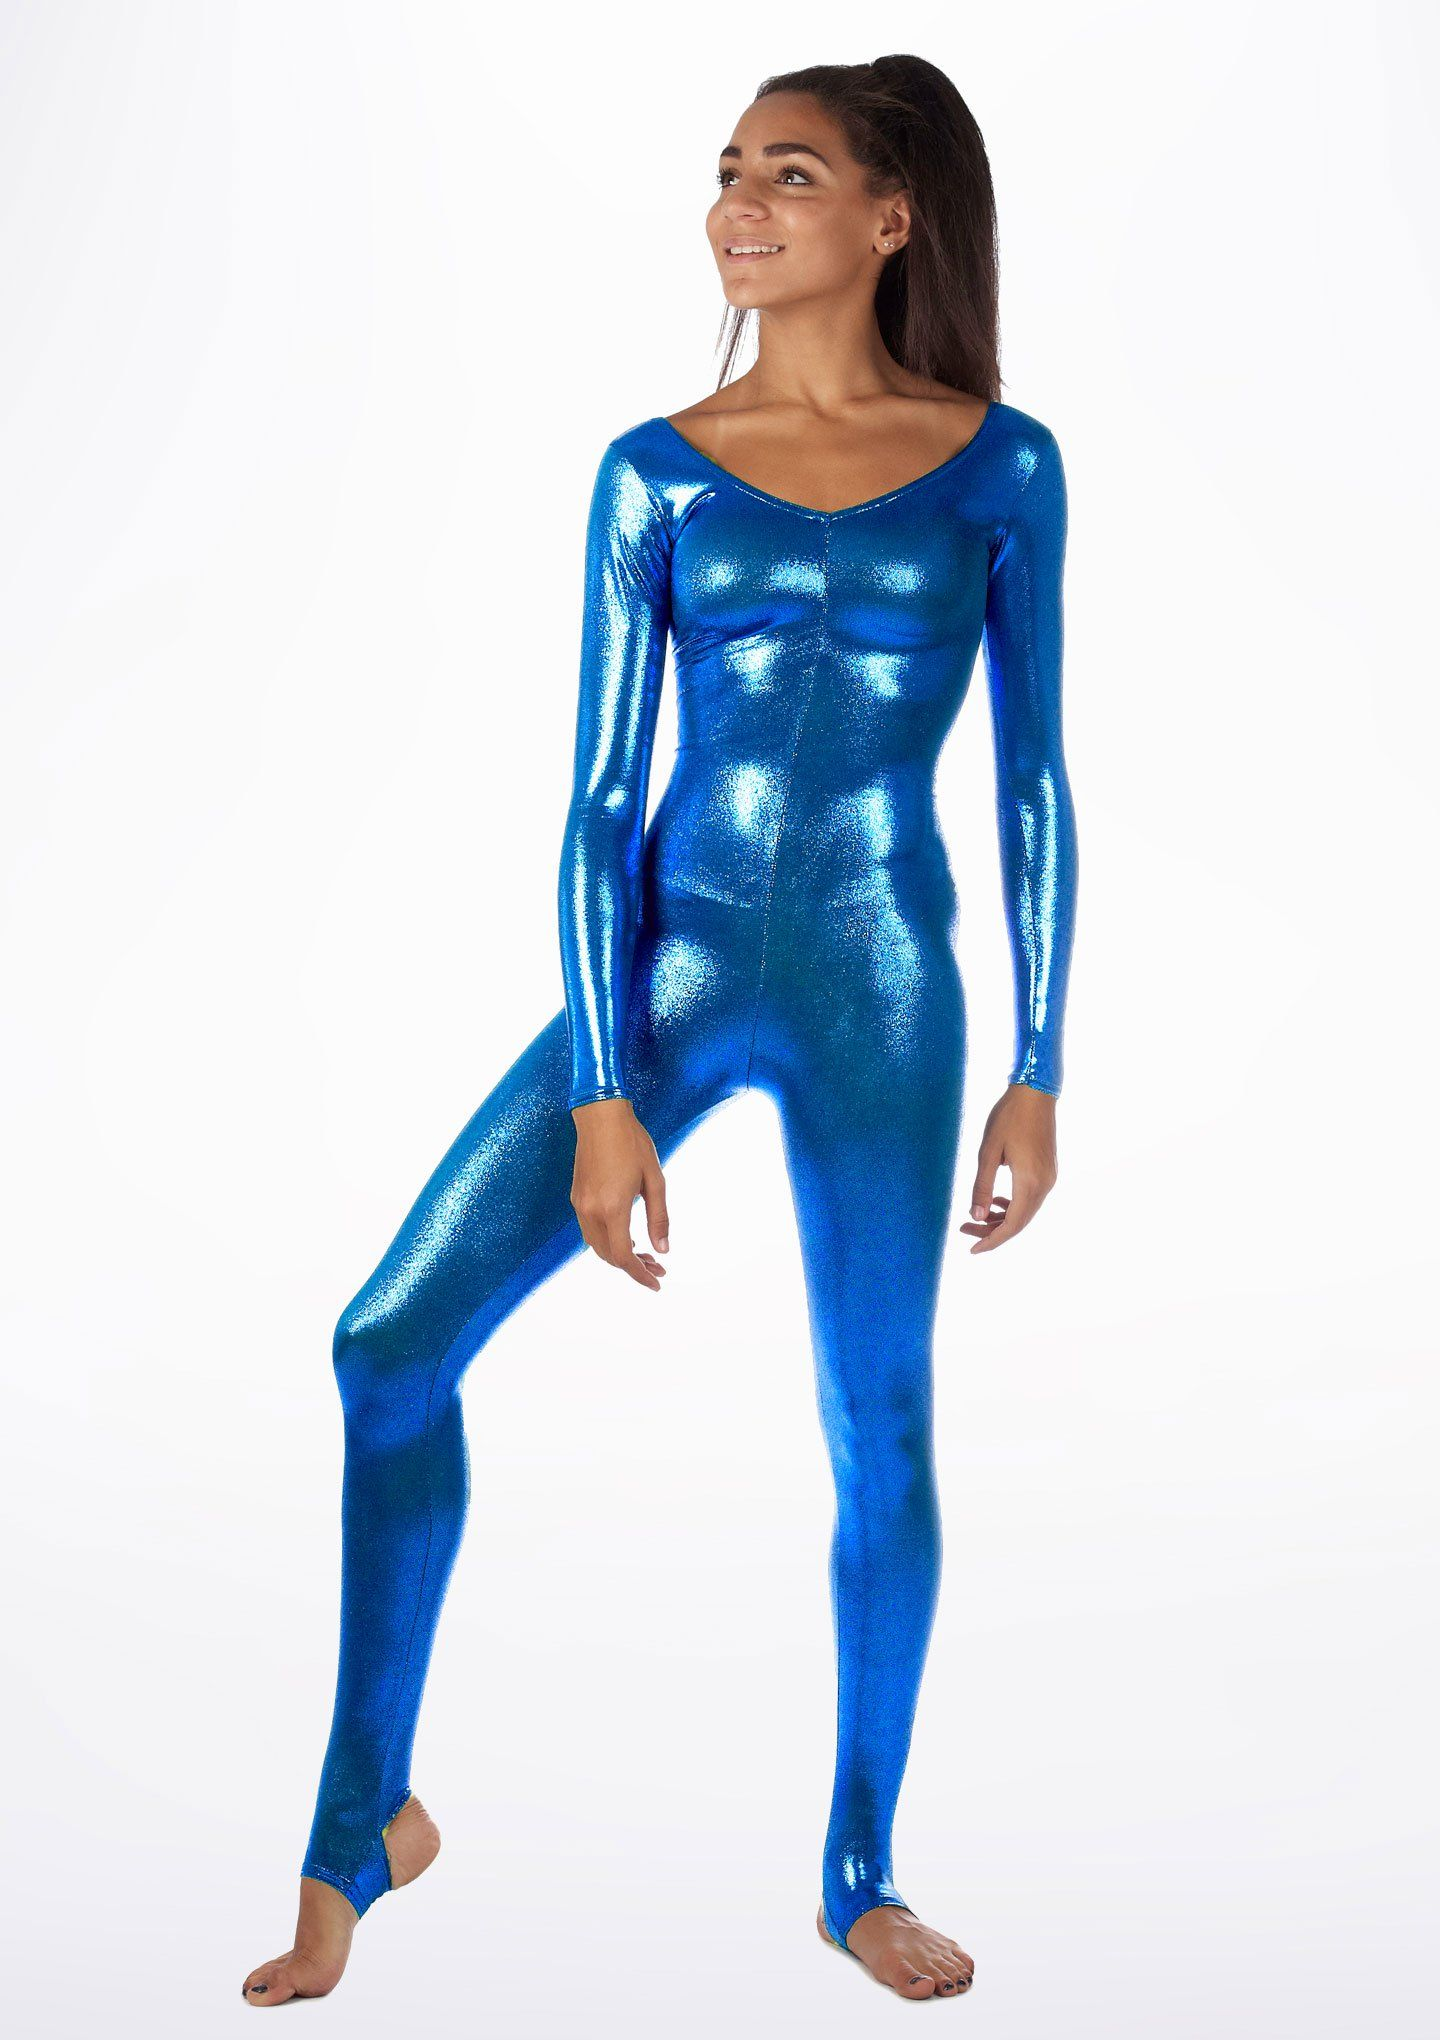 d2fa408c553dd4 Alegra Blaine Metallic Catsuit - Move Dancewear® Shiny Leggings, Tight  Leggings, Thigh High